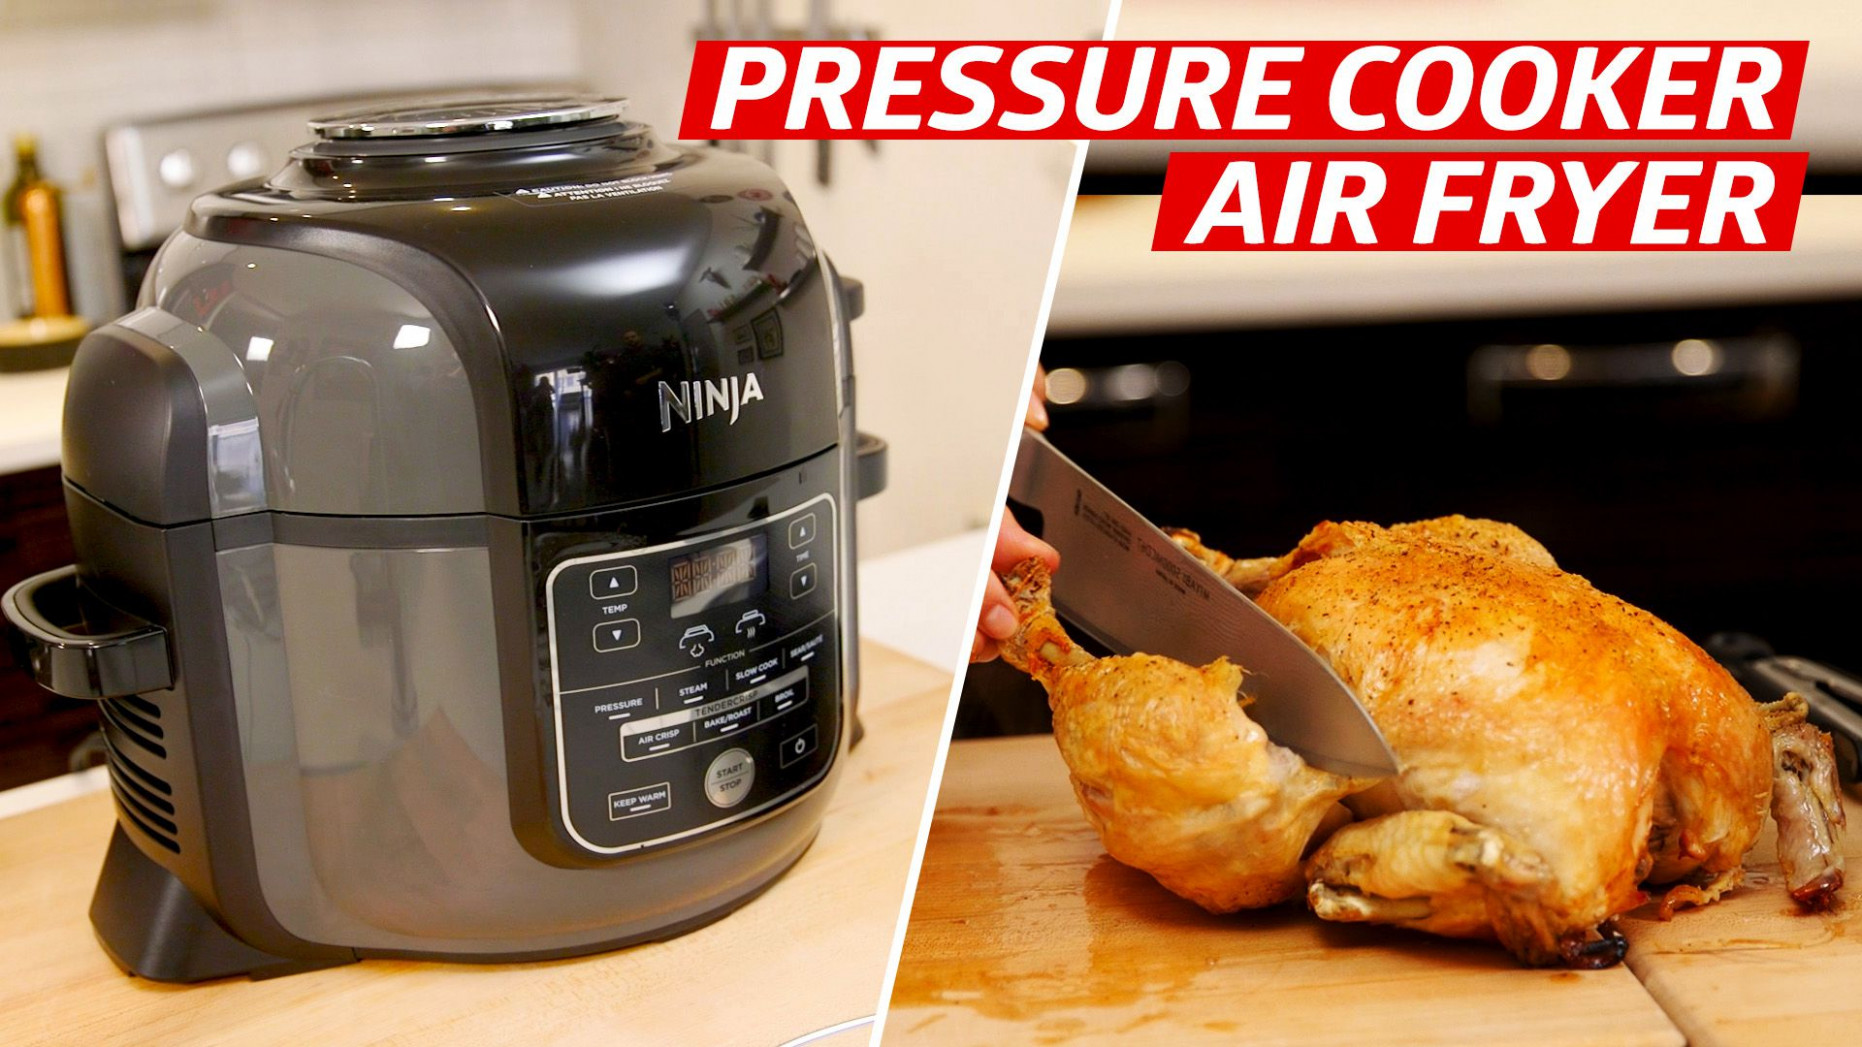 Testing a Two-In-One Air Fryer and Pressure Cooker - Eater